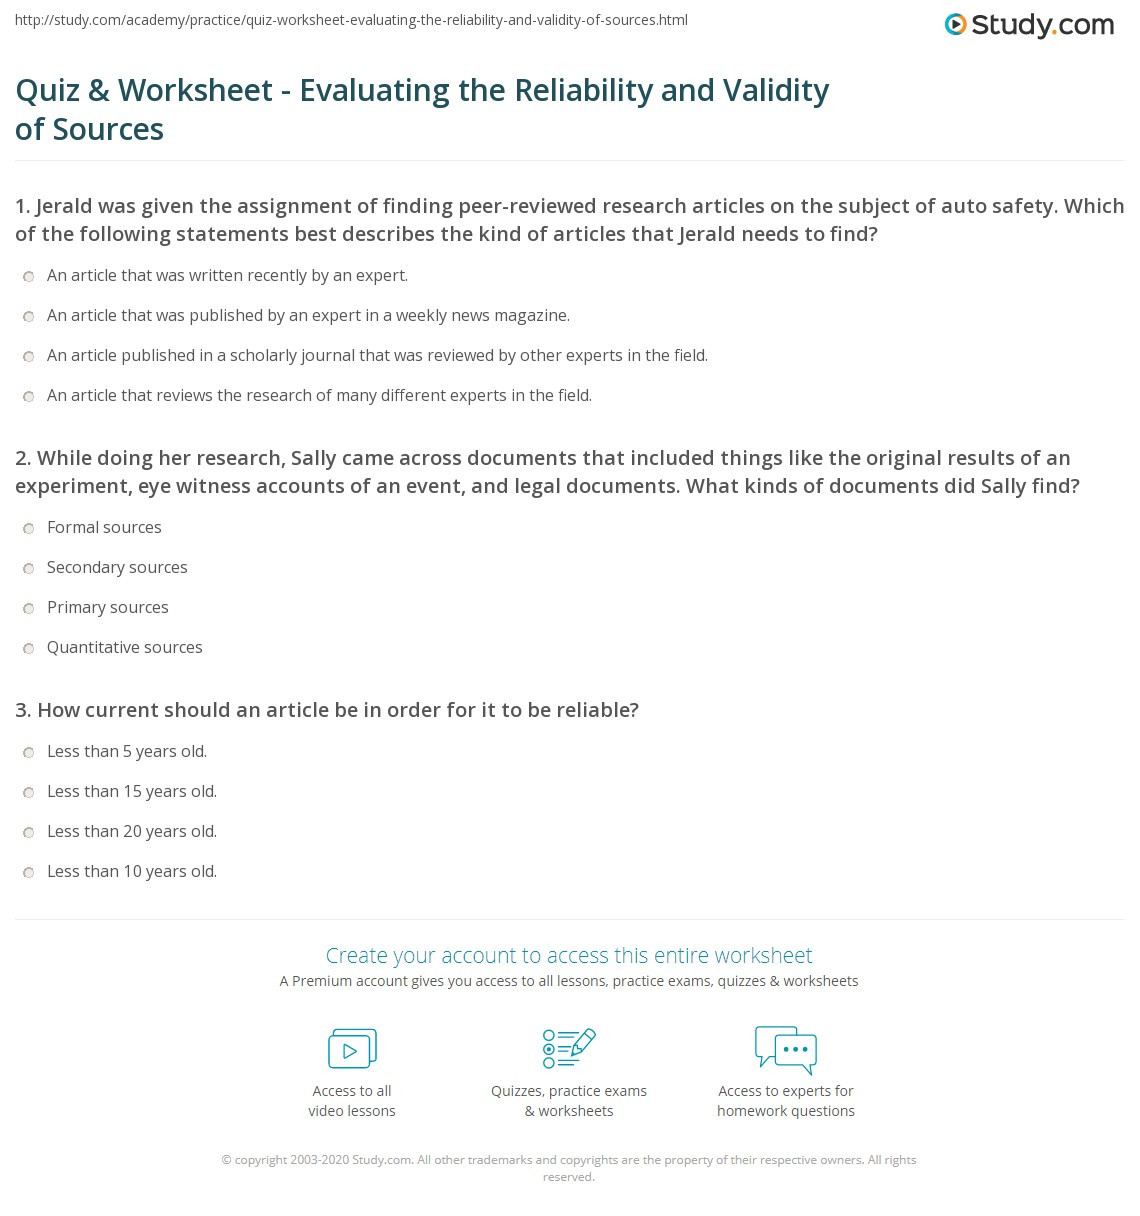 Peer Review Worksheet High School Quiz & Worksheet Evaluating the Reliability and Validity